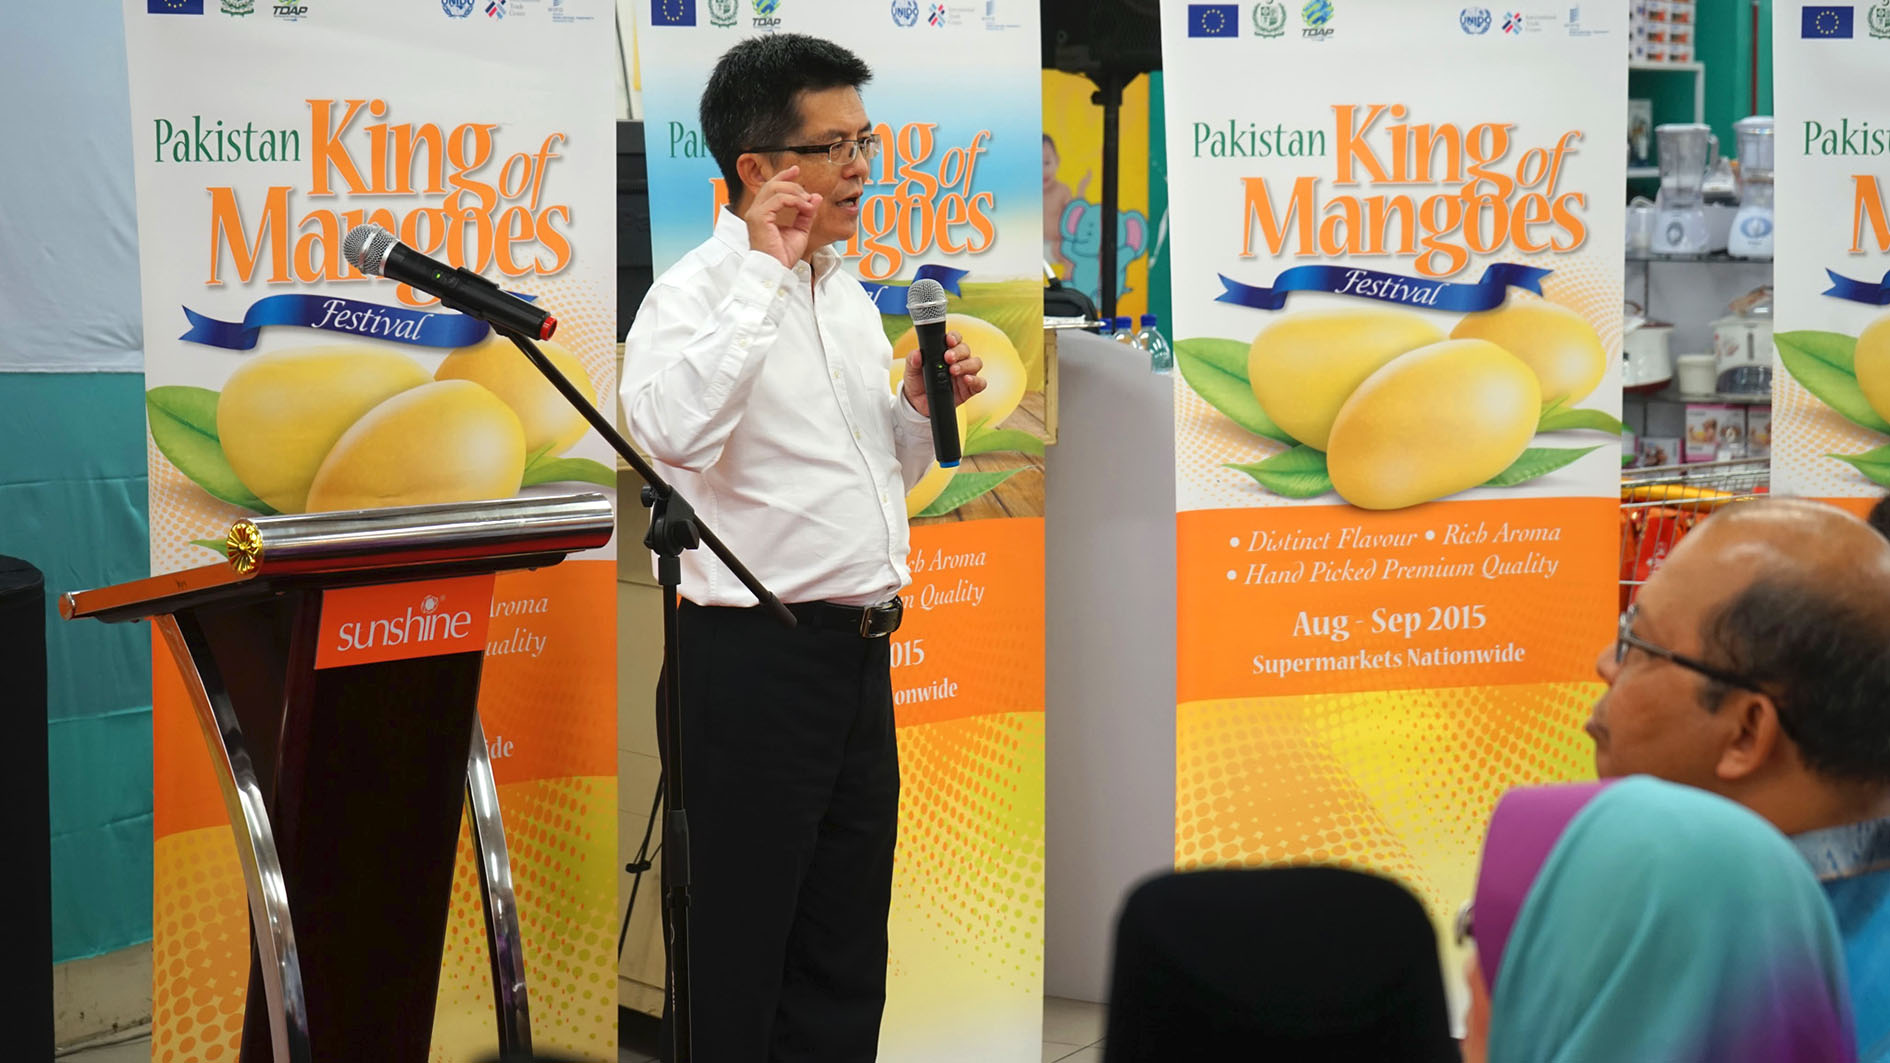 Kit Chan of UNIDO enlightening the guests on Pakistan mangoes and the TRTA II Programme.